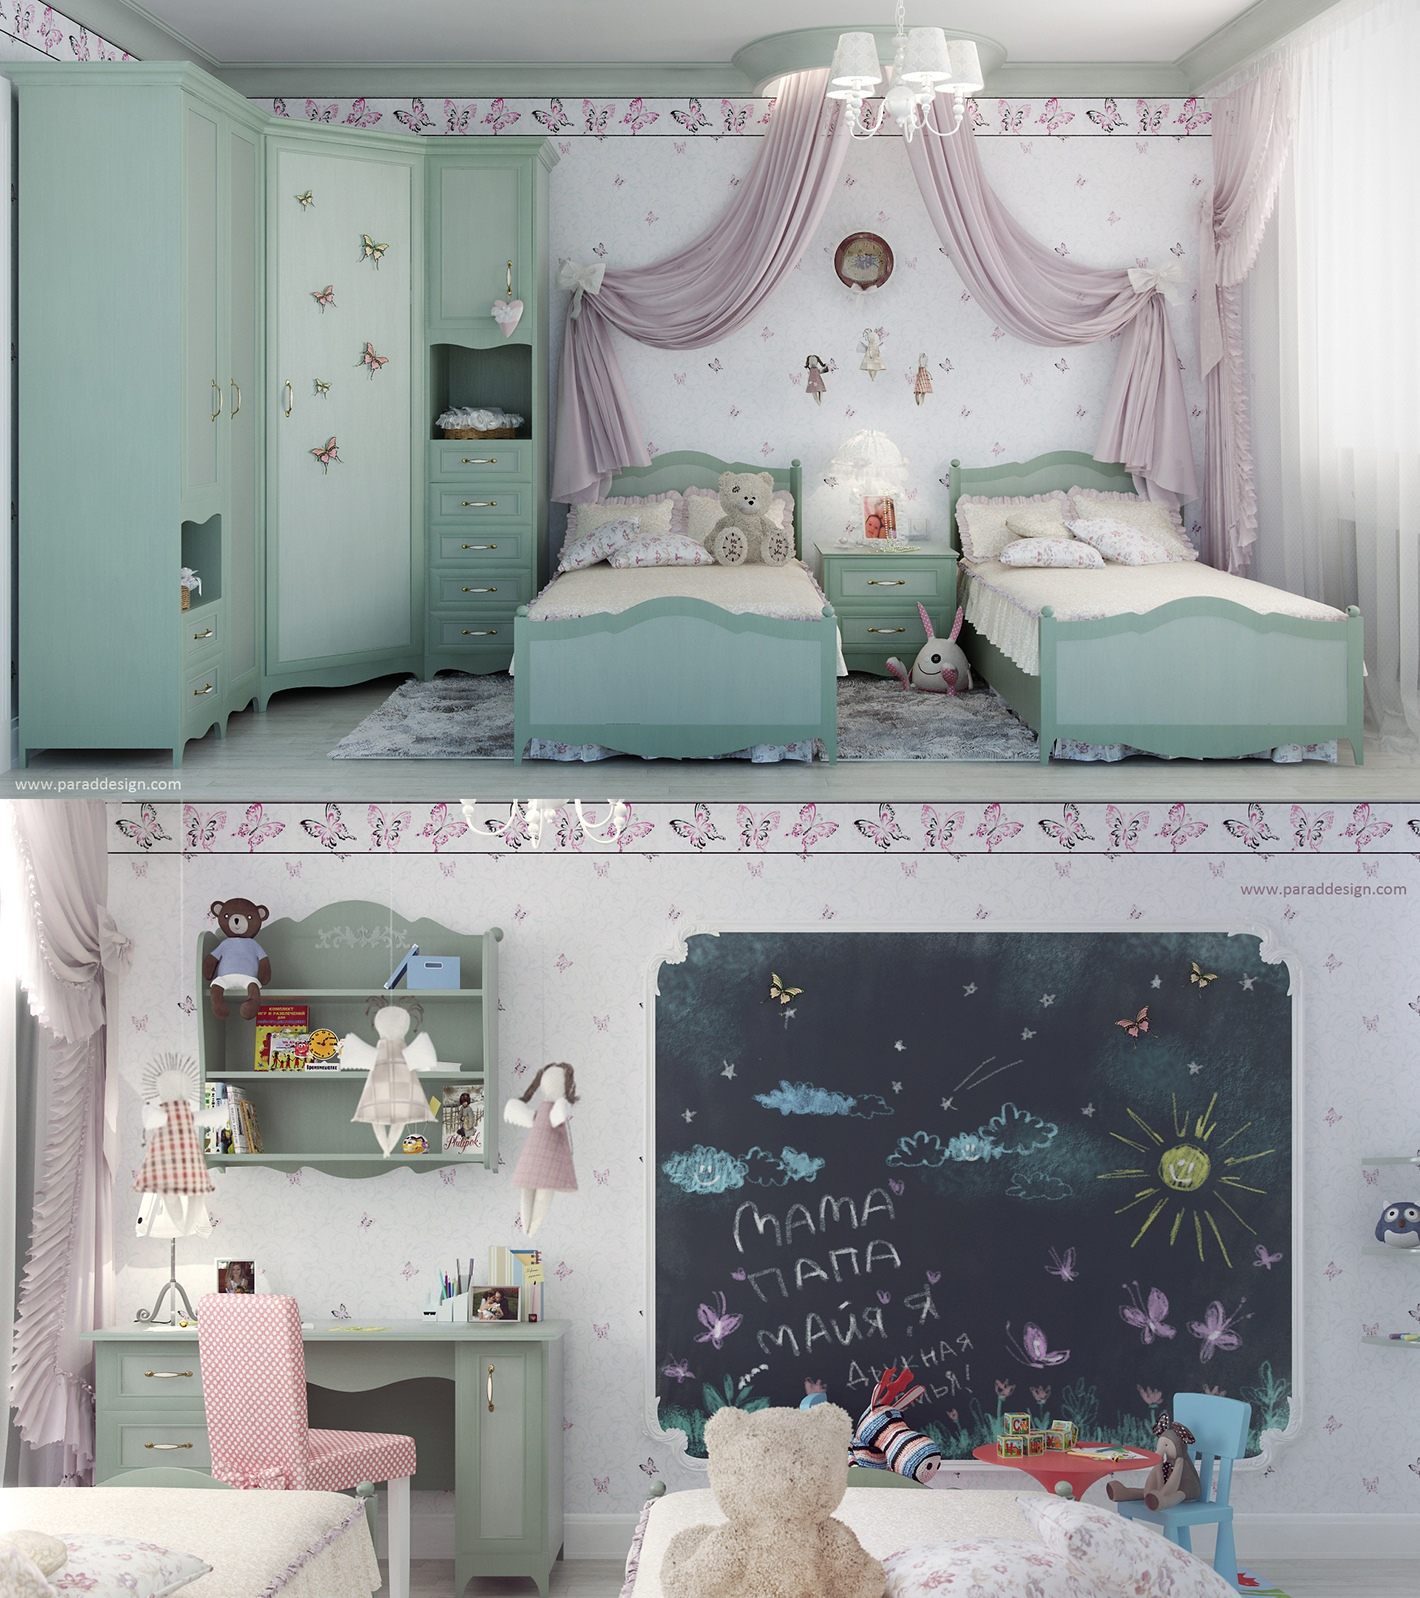 2 little girls bedroom 7 interior design ideas - Decorating little girls room ...